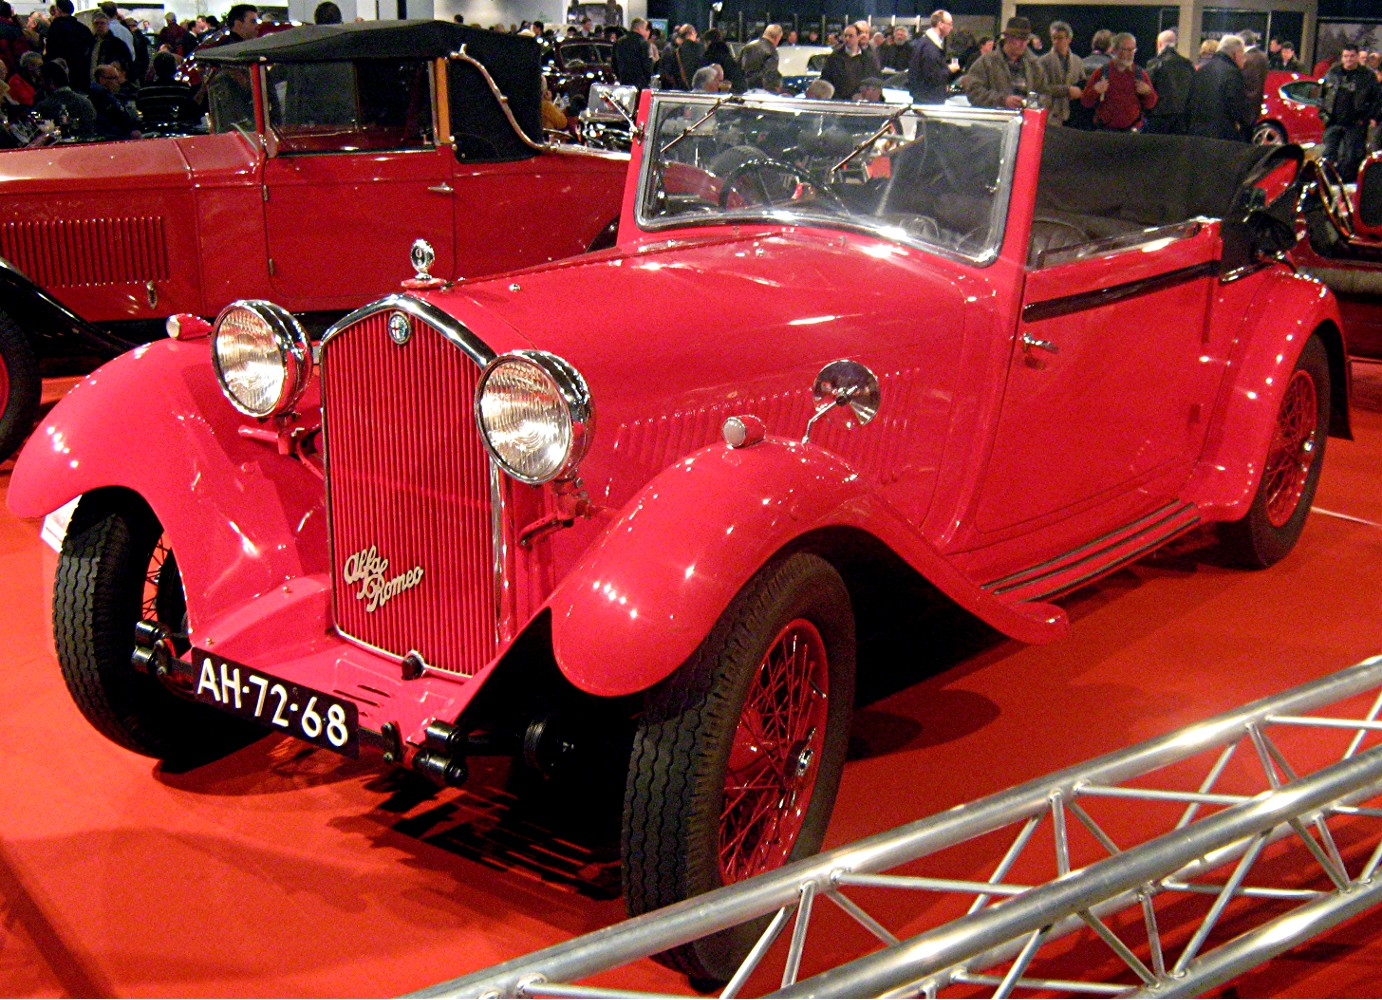 http://upload.wikimedia.org/wikipedia/commons/4/4a/Alfa_Romeo_6C_1900_red.jpg